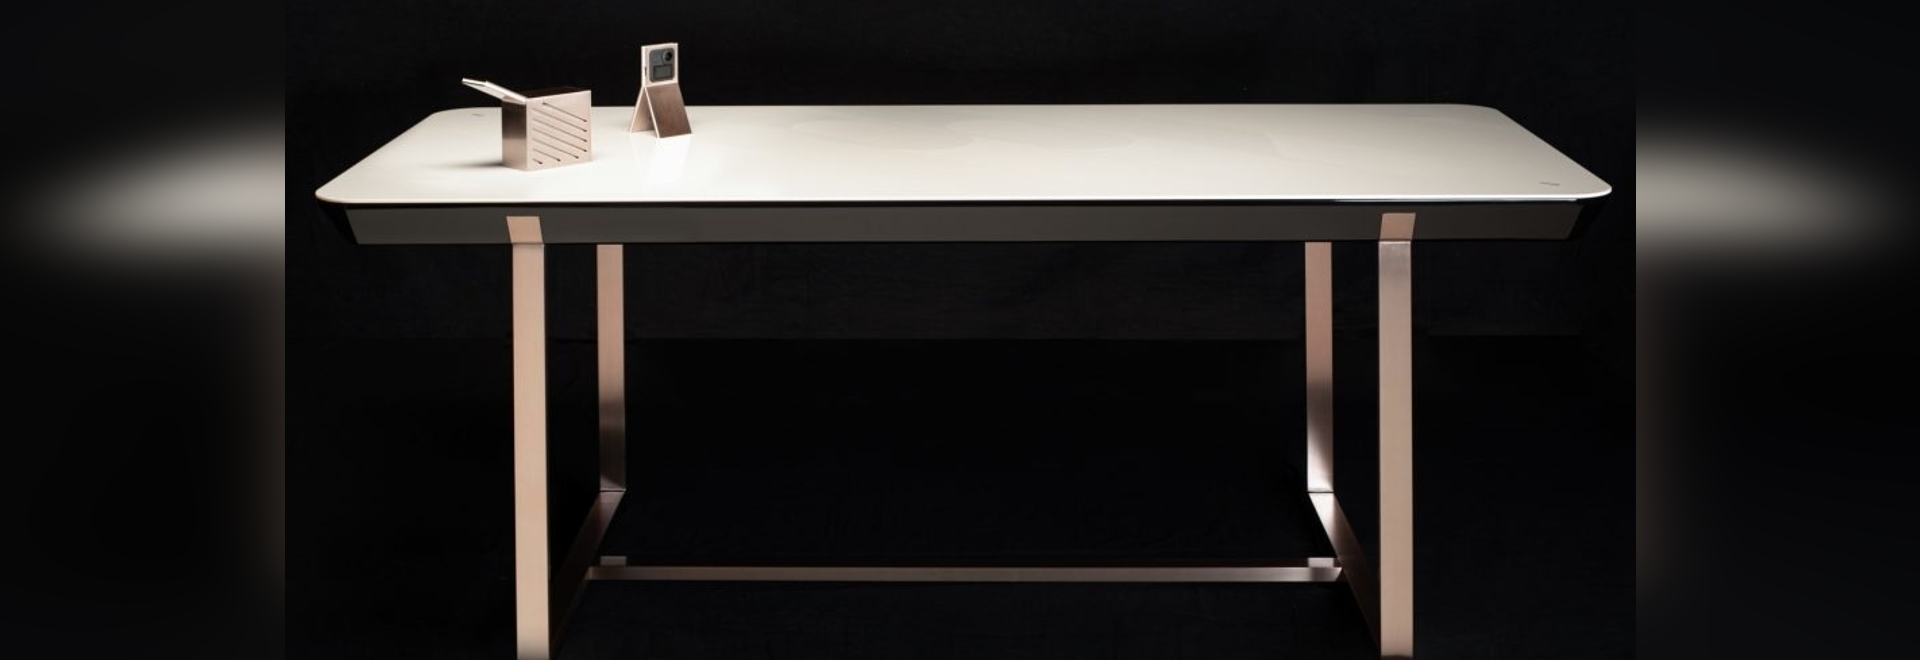 The Versâtis – Eurokera Smart Table by Jean-Marc Gady